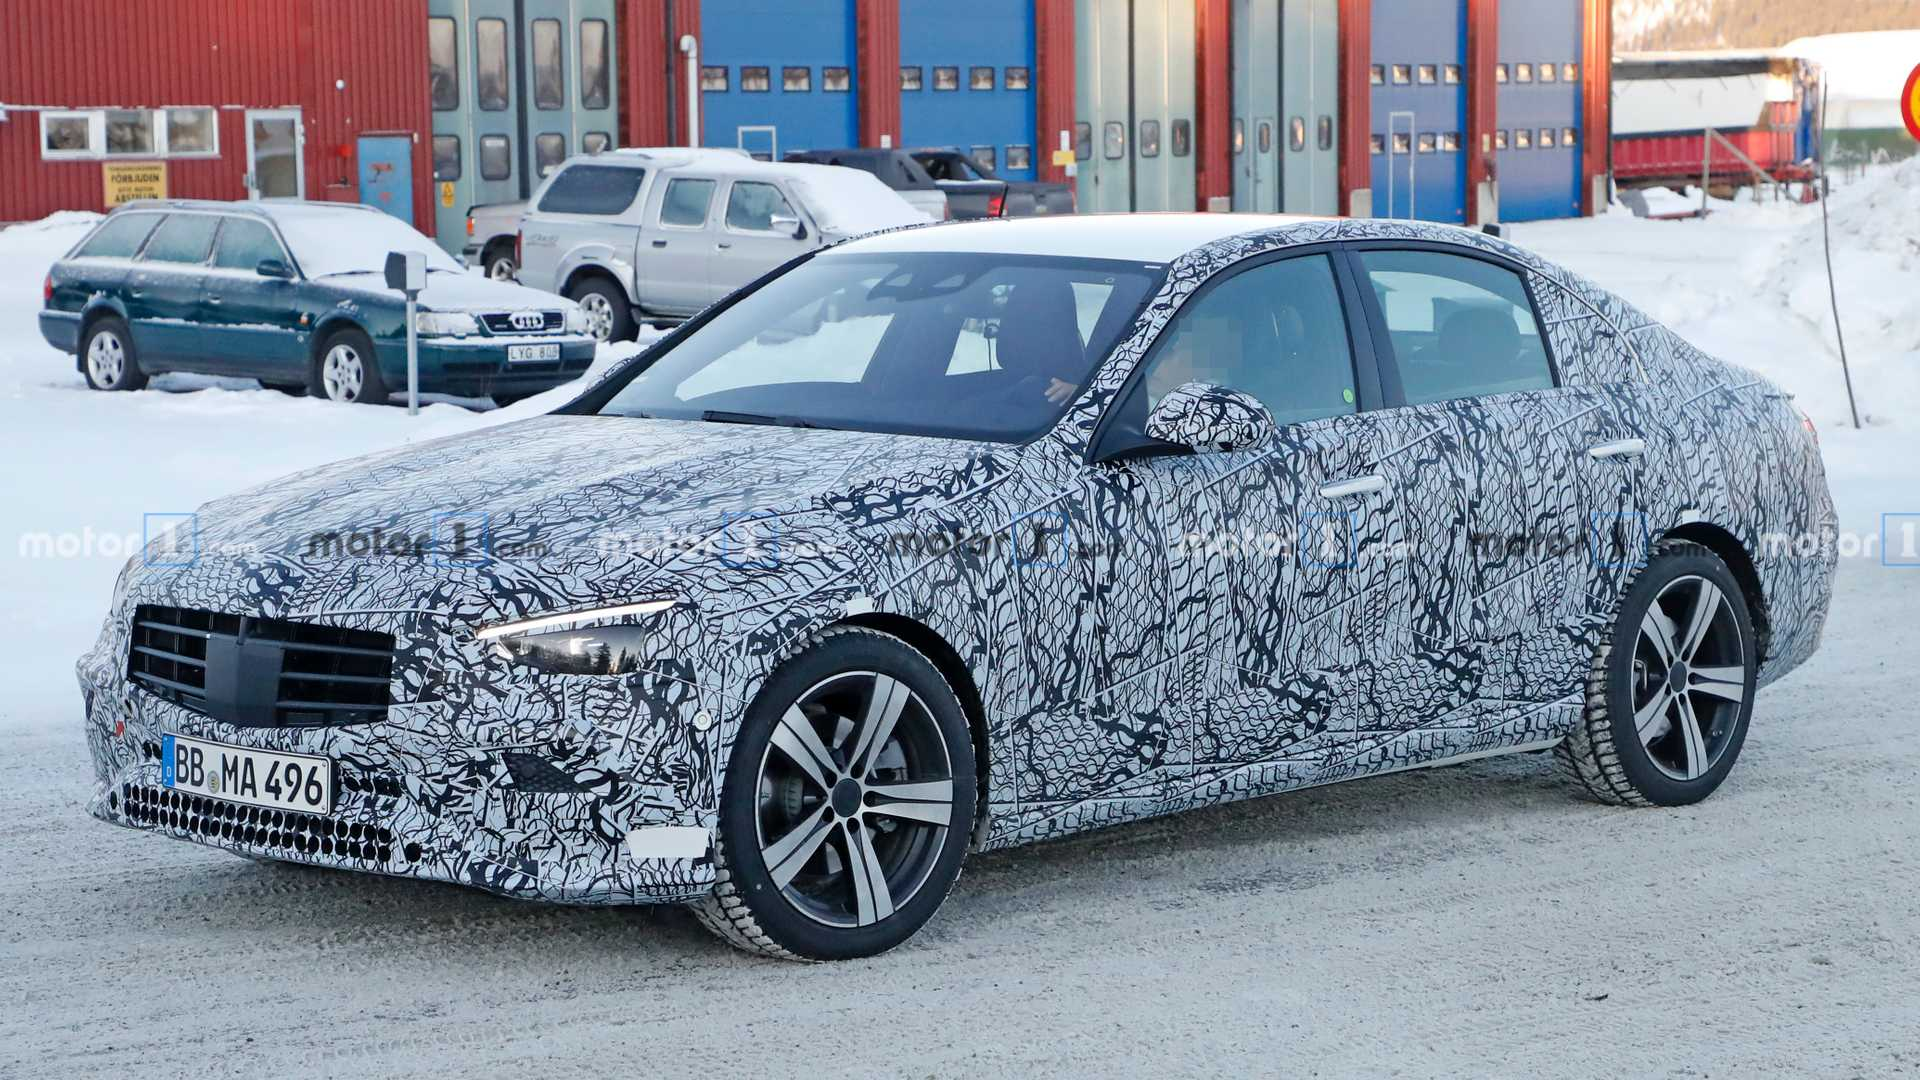 2021 Mercedes C-Class continues to shed camo in new spy photos